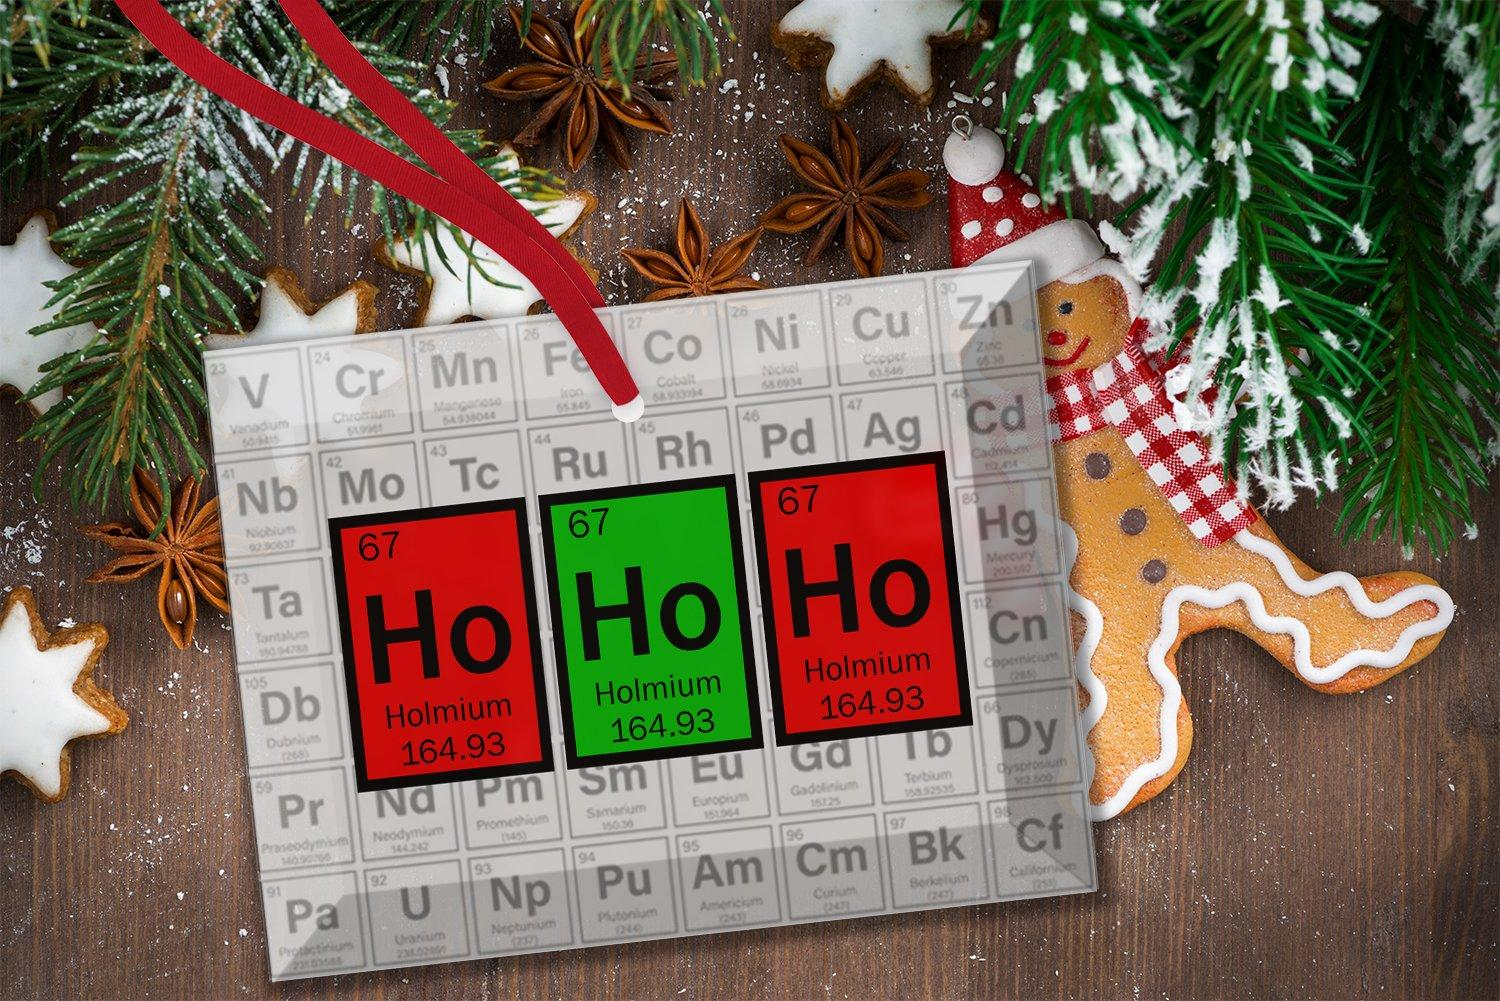 Ho Periodic Table Of Elements Gl Christmas Ornament